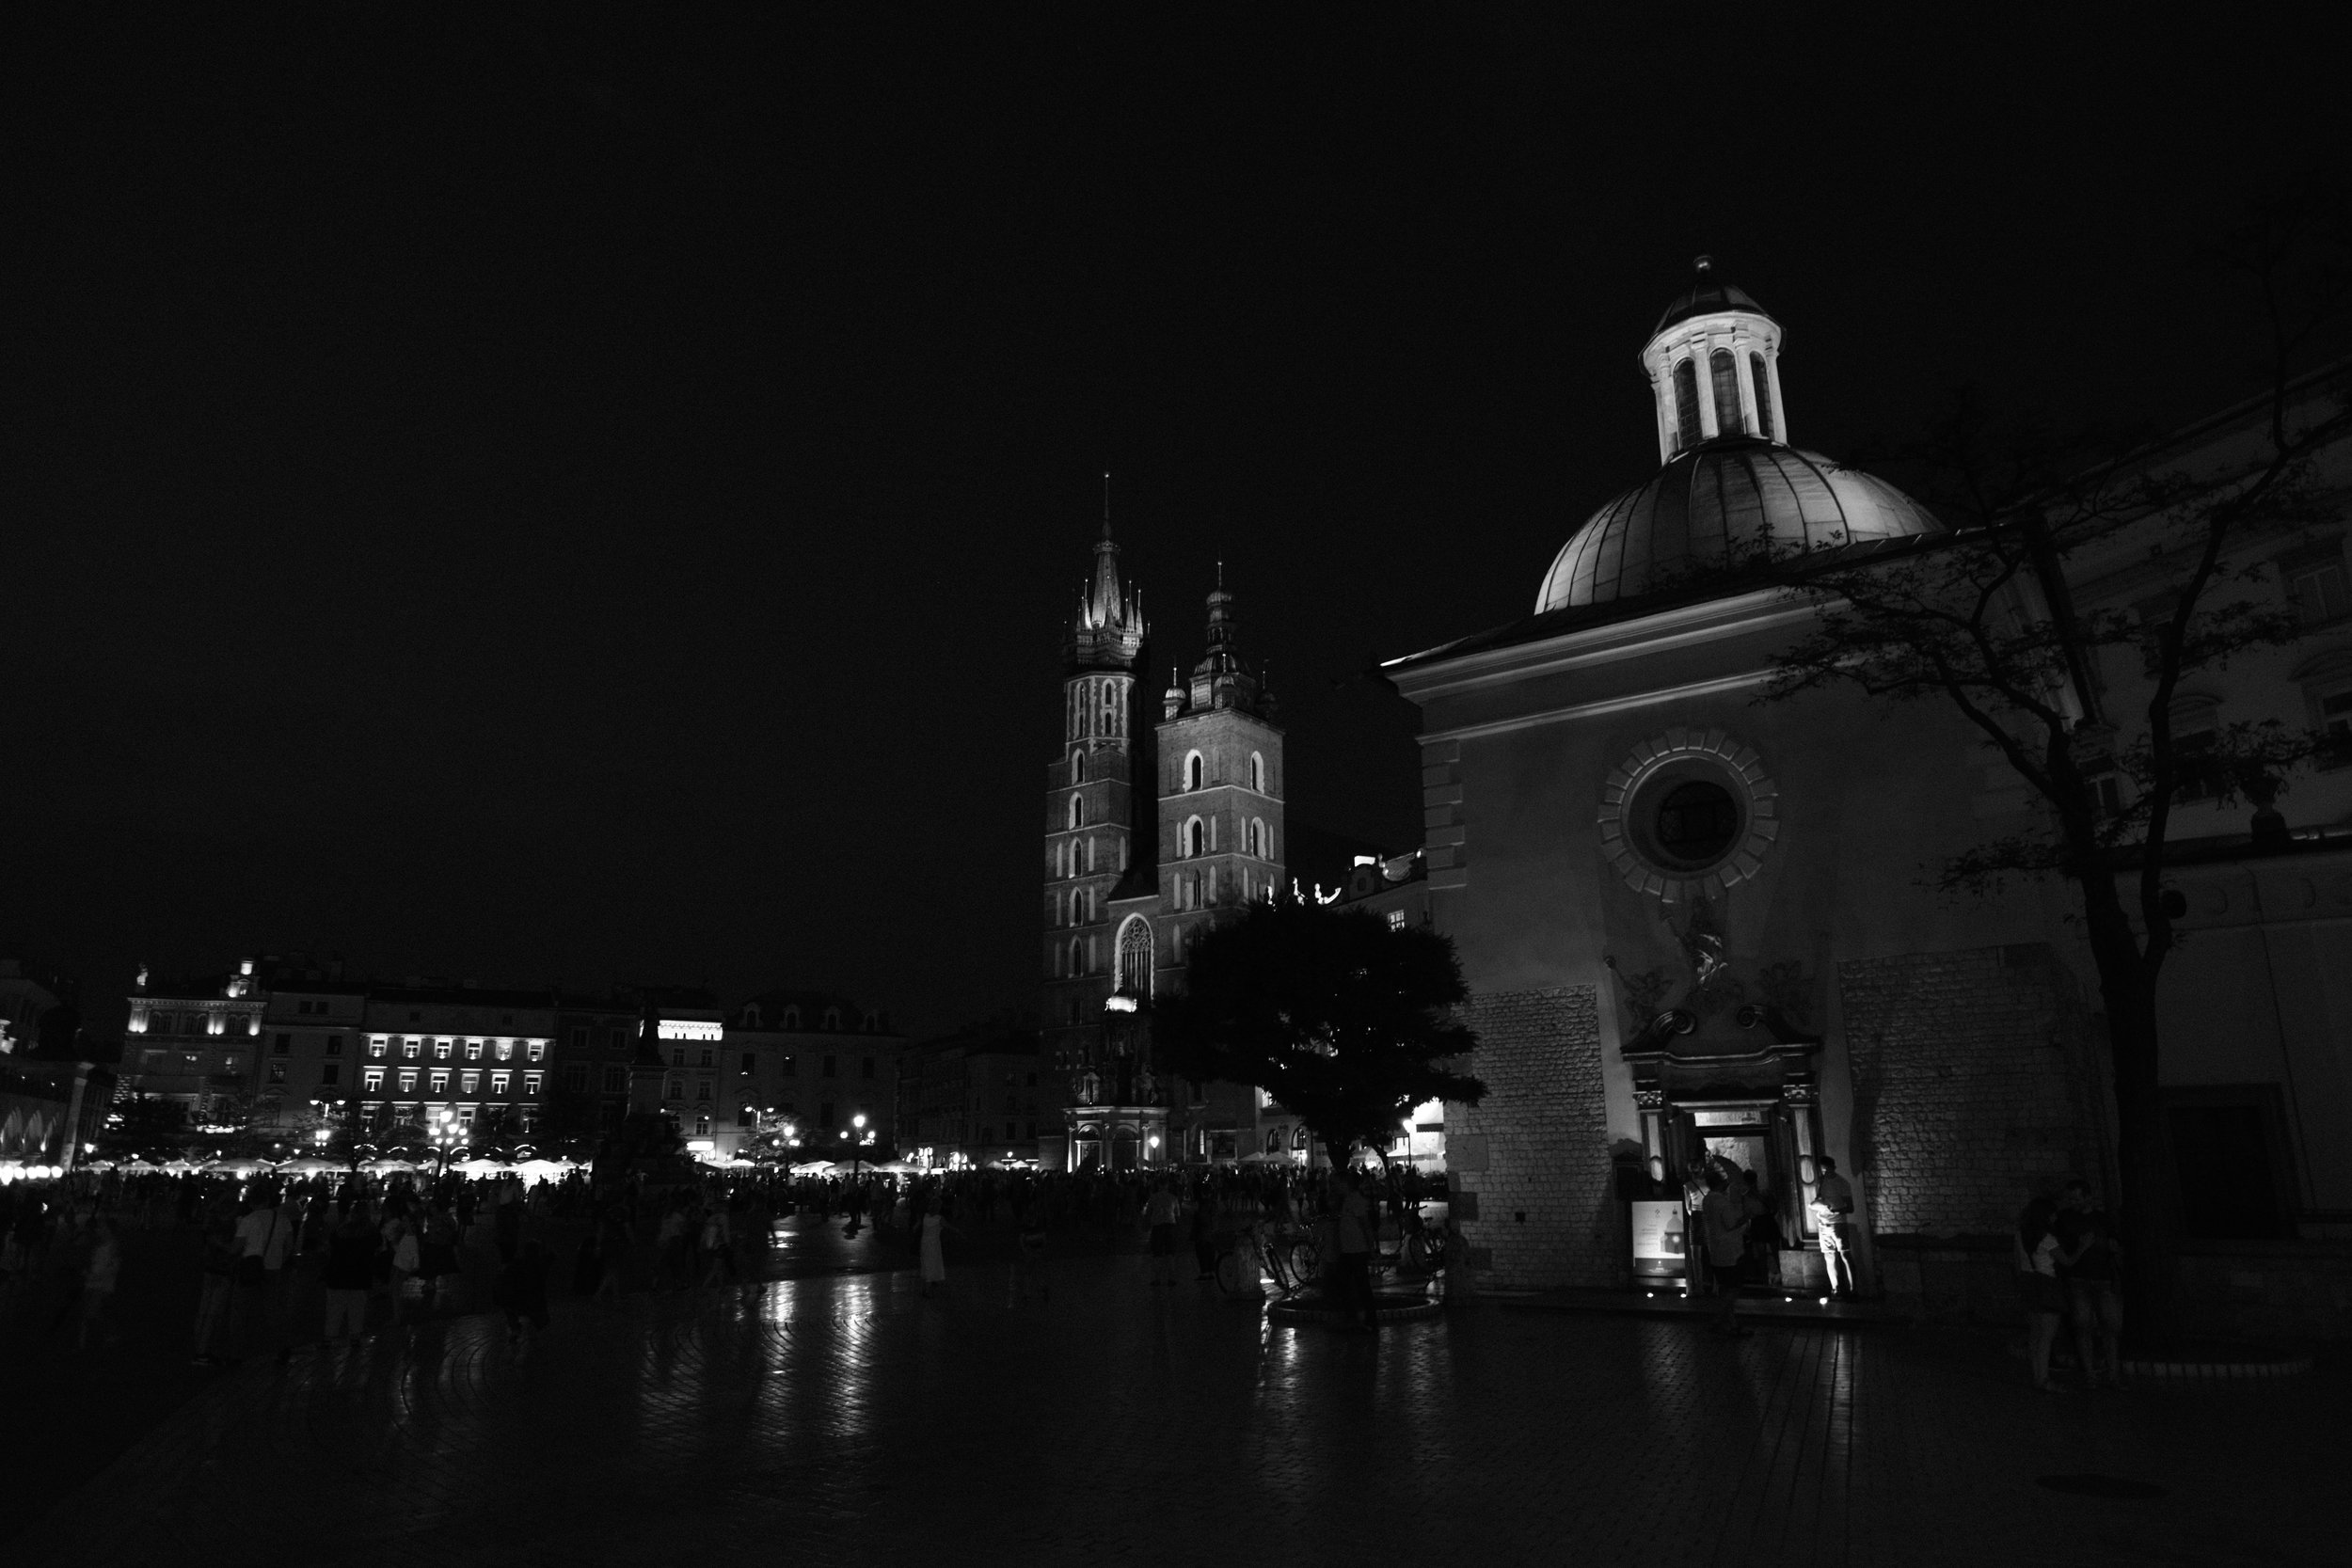 Evening scene with St. Mary's Basilica in the Main Square of the Old Town in Krakow, Poland